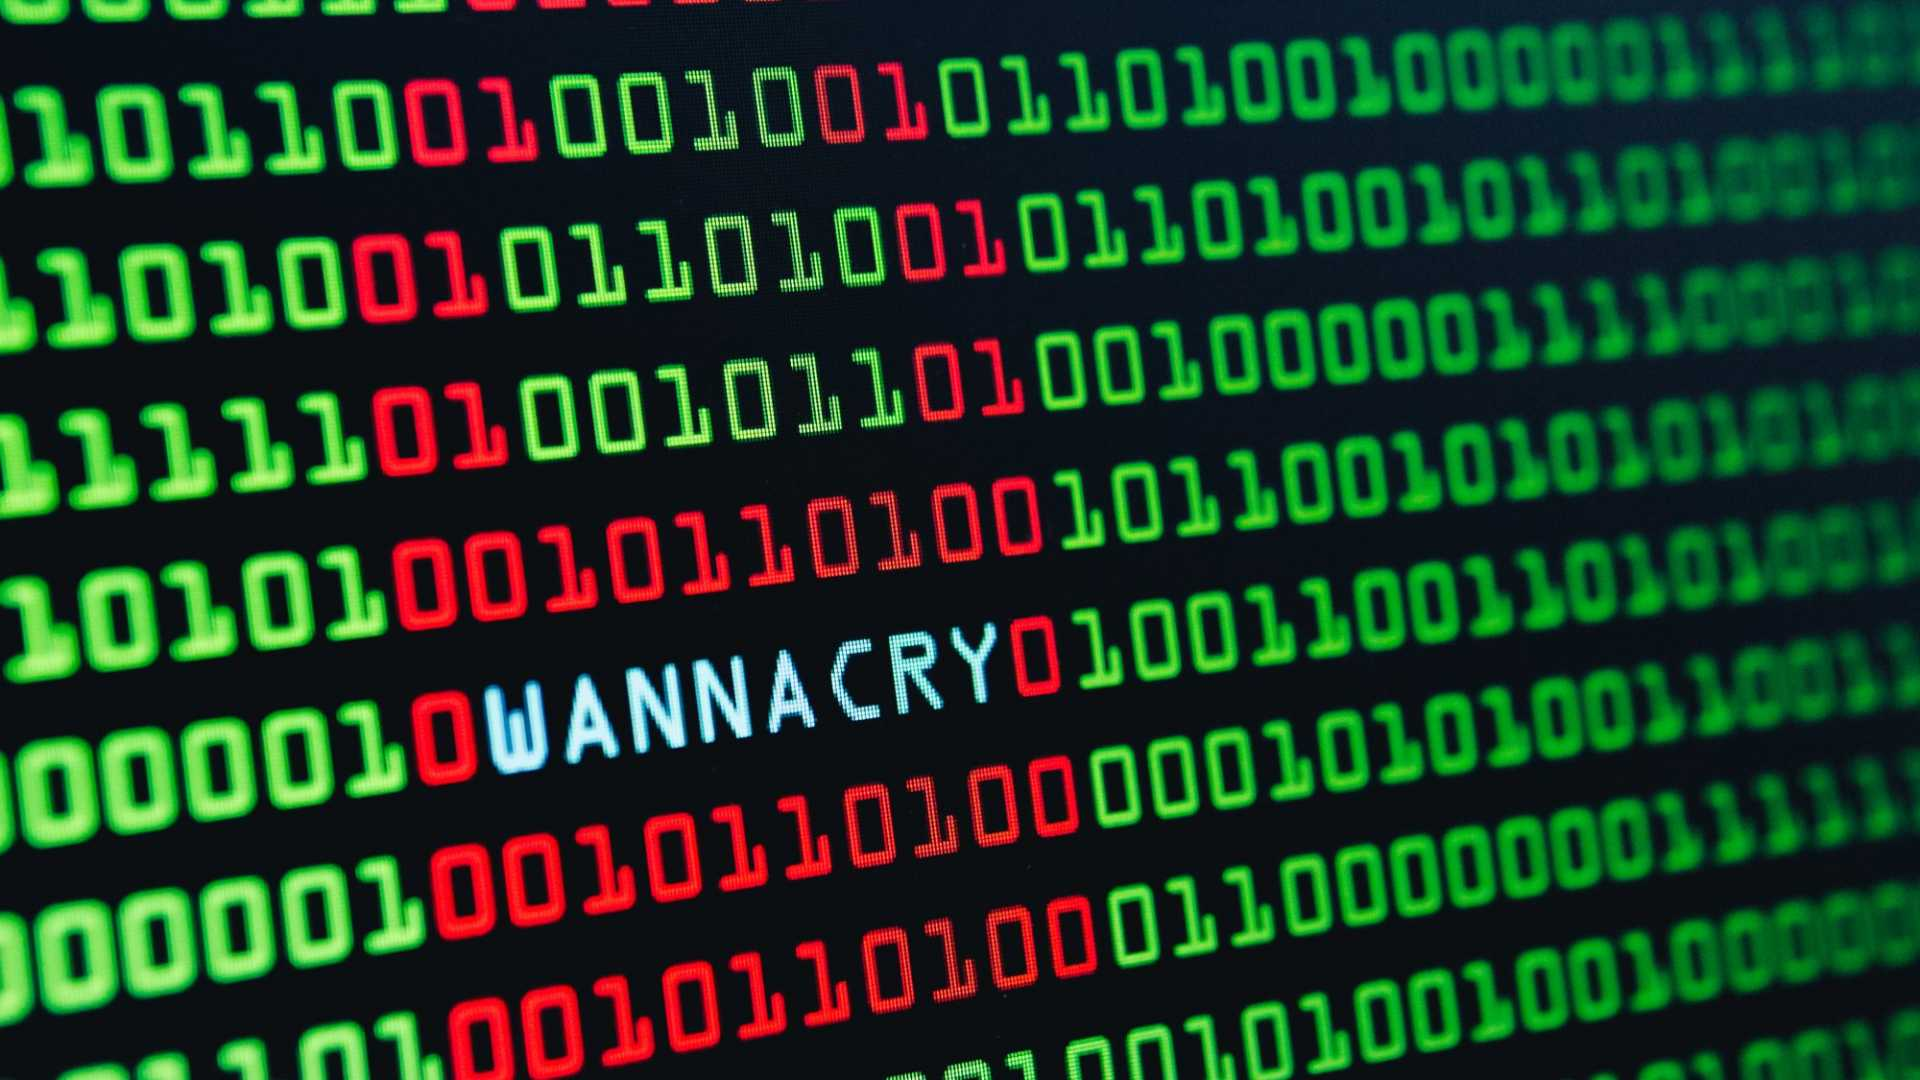 Why Our Cyber Worries, Post-WannaCry, Have Only Just Begun